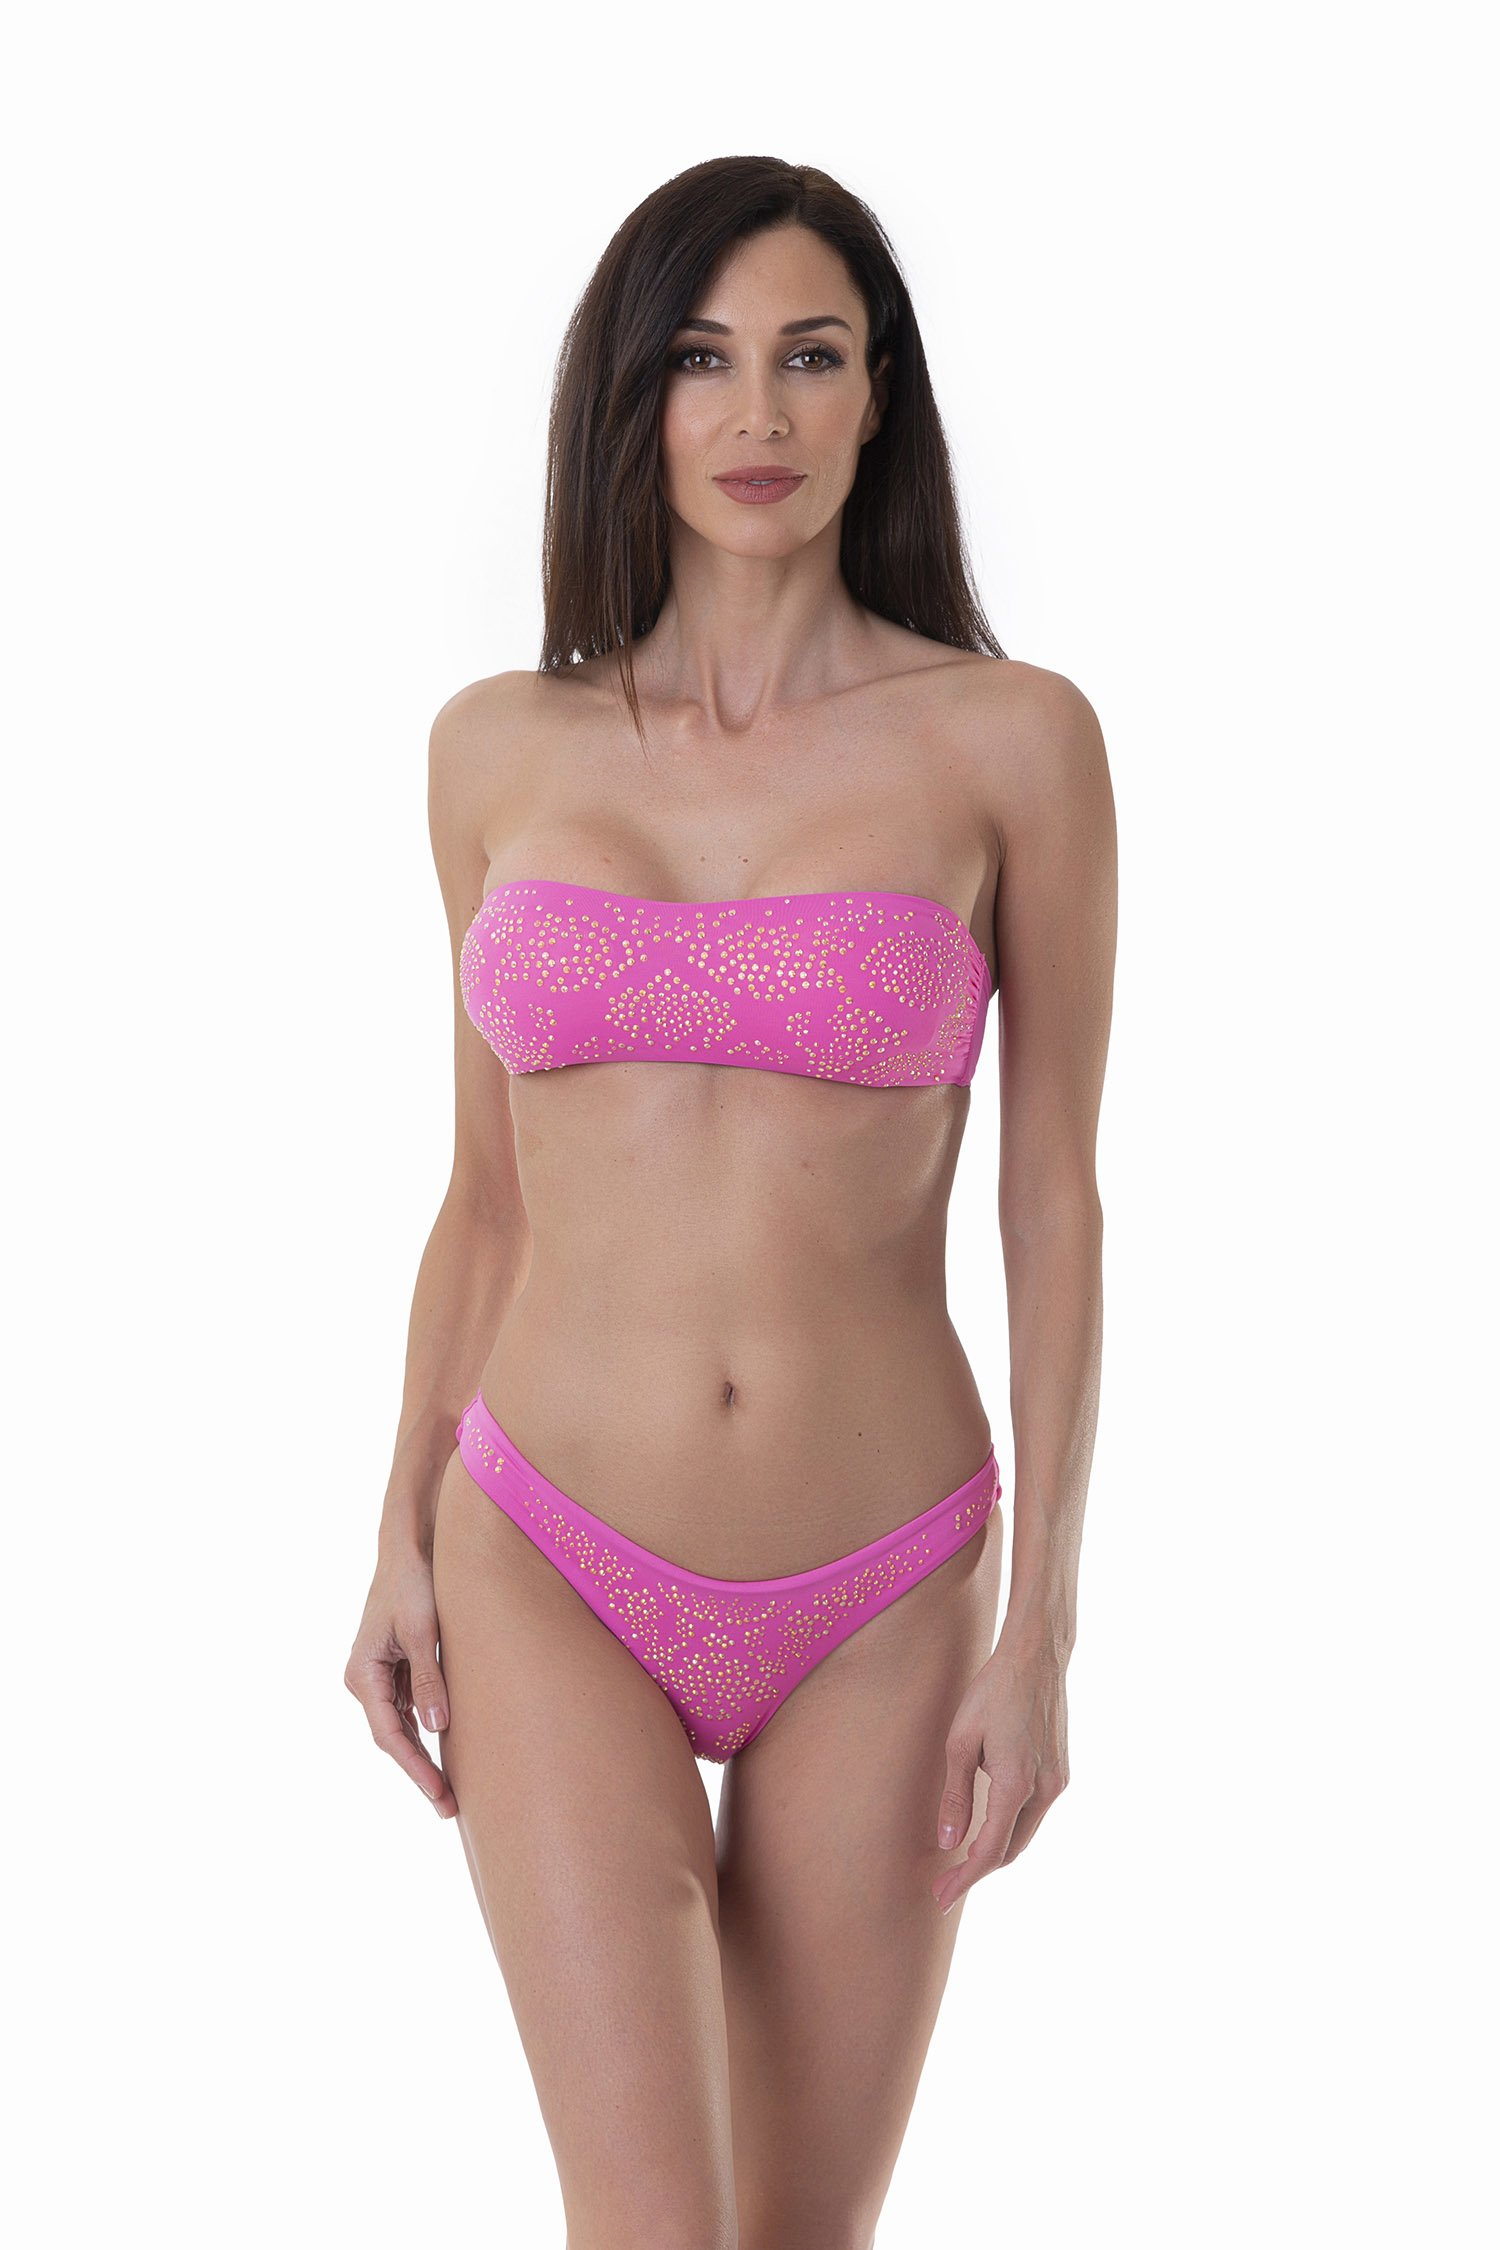 BANDEAU BIKINI SOLID COLOR WITH RHINESTONES AND BRAZILIAN BOTTOM